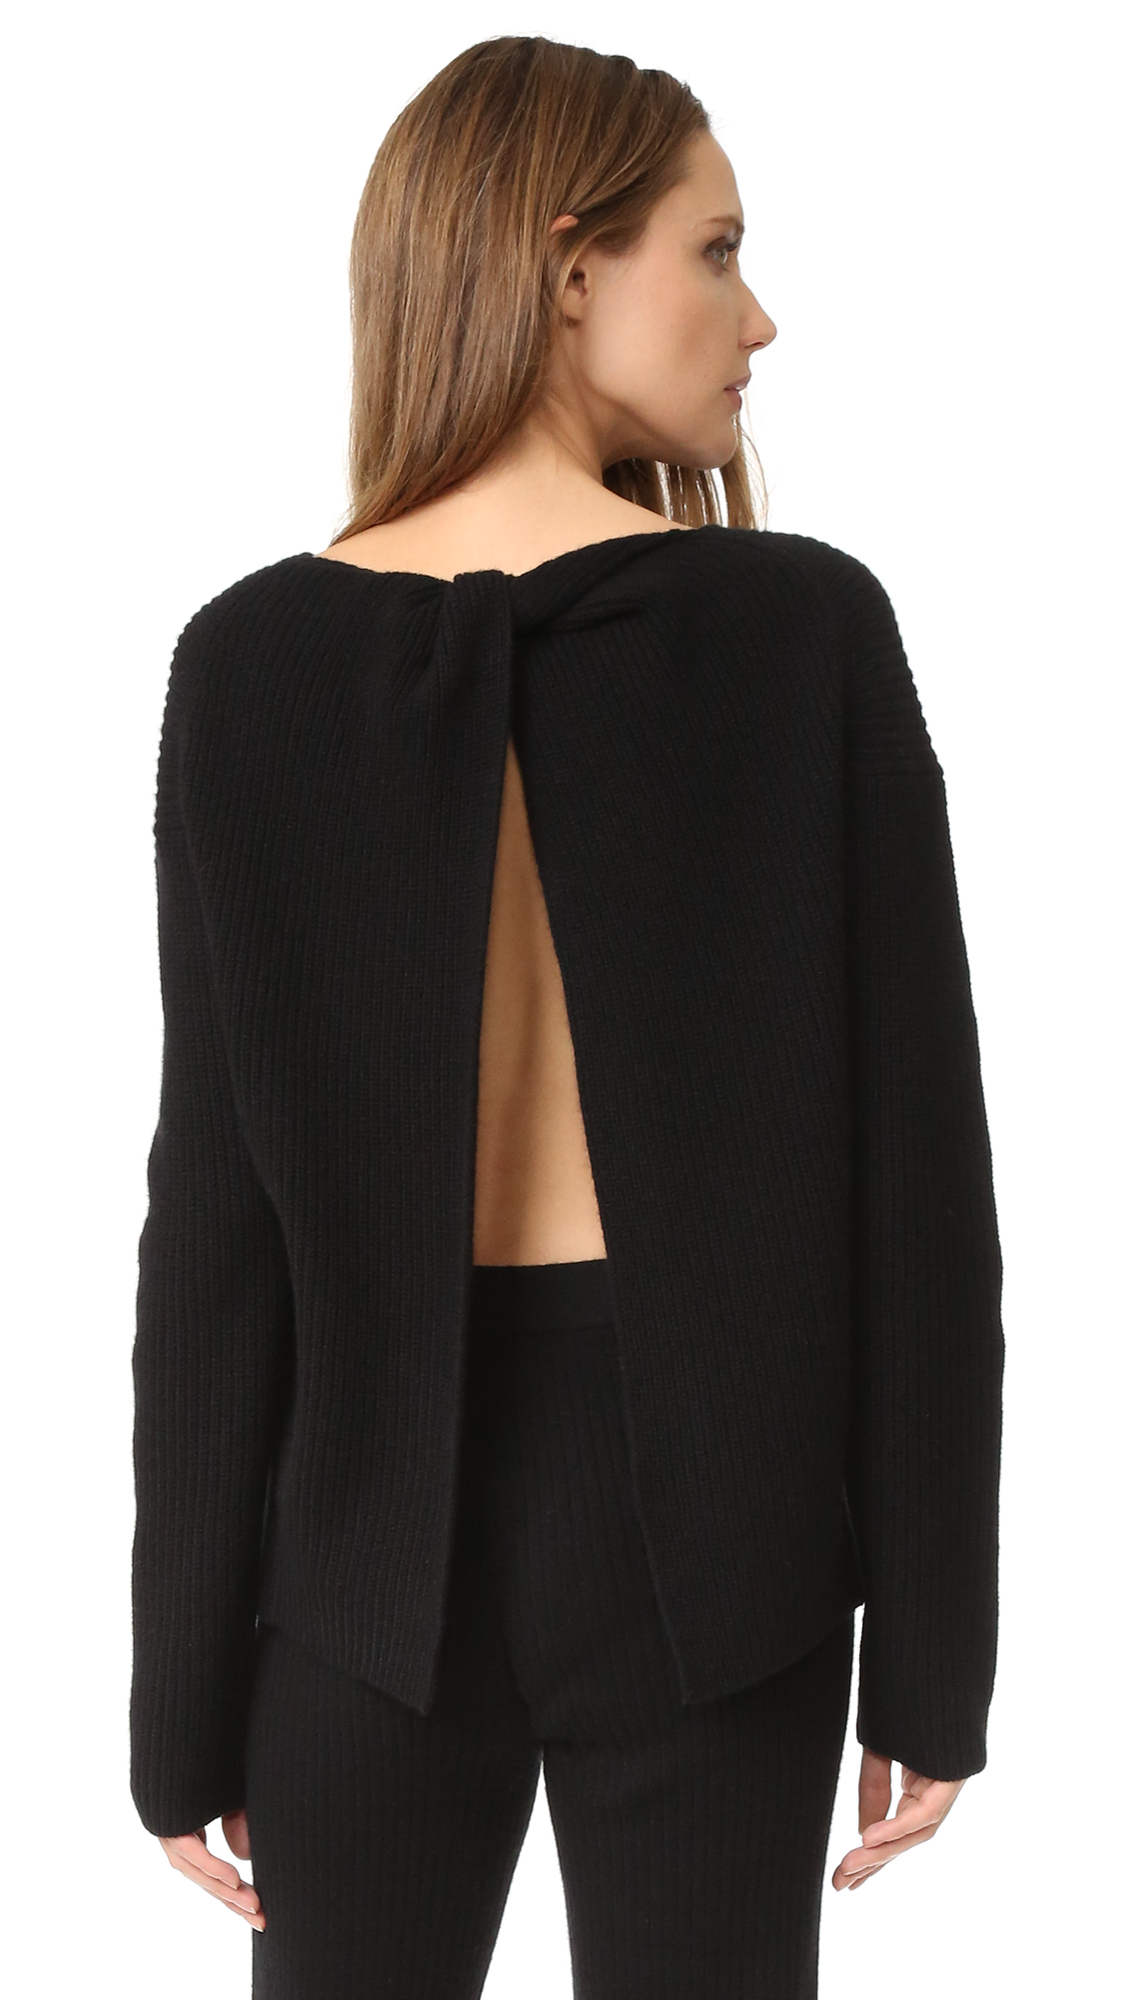 Theory Twylina B Cashmere Sweater - Black at Shopbop